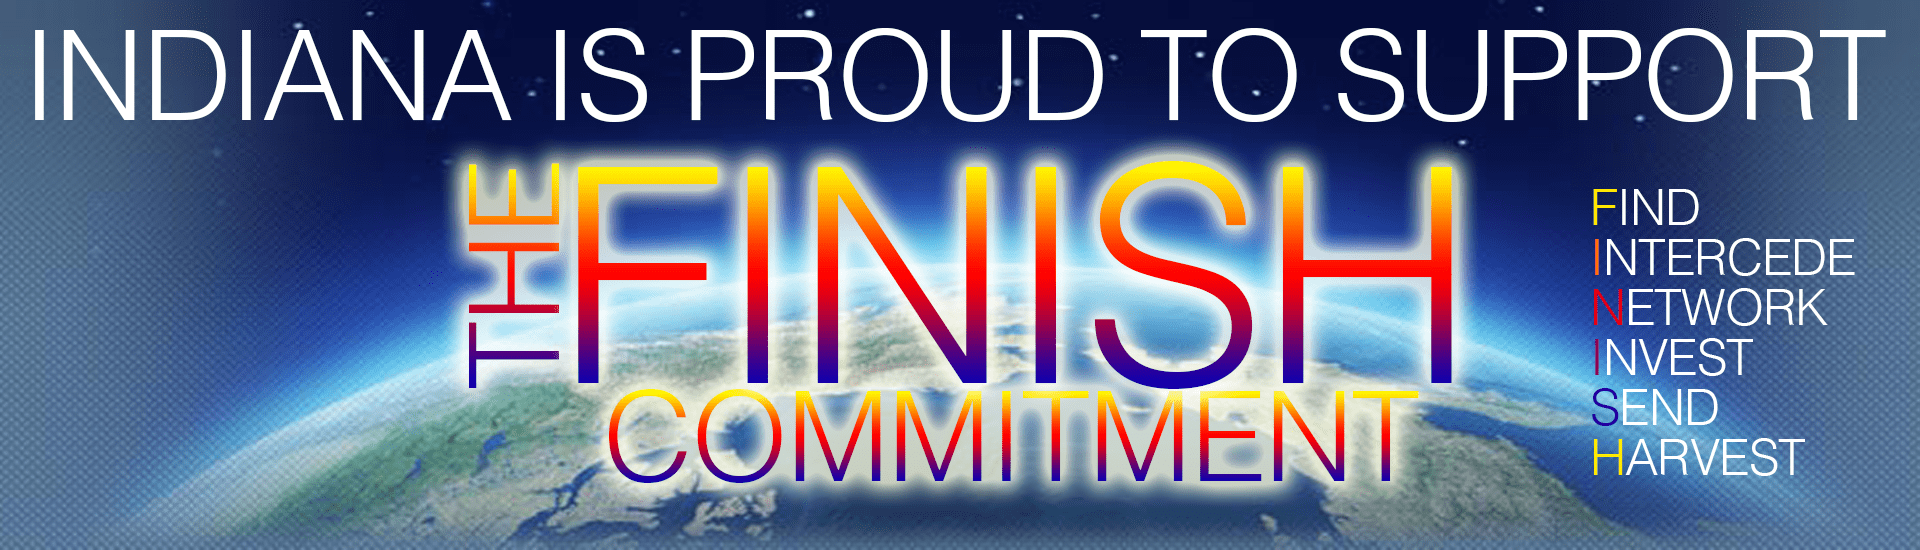 Finish Commitment